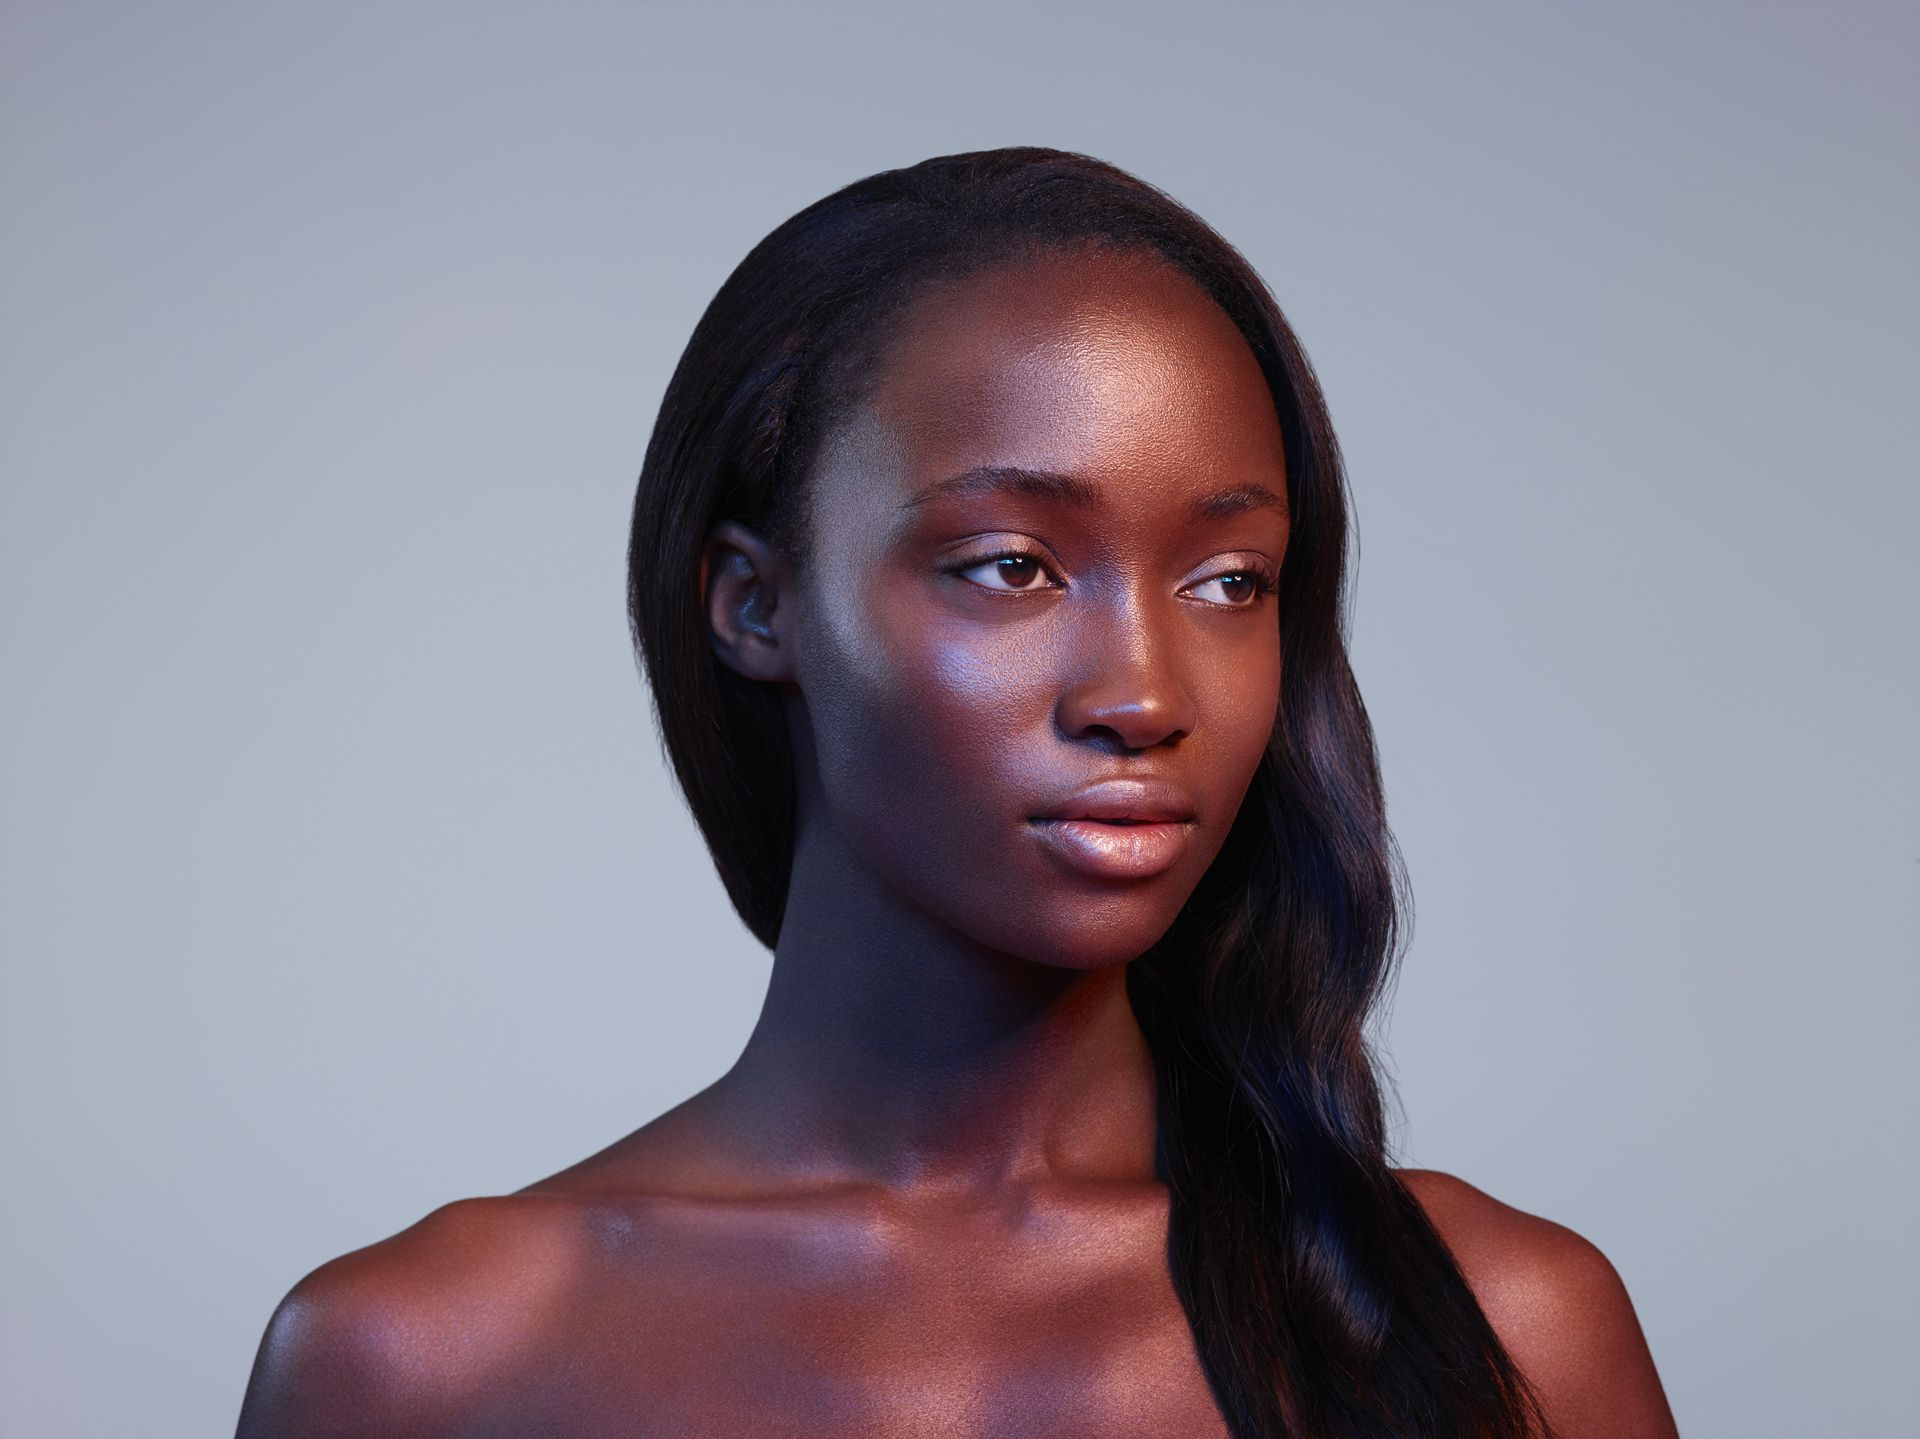 black woman well groomed hair looking away from camera in coloured lights on light pink background by Simon Duhamel for Skintone